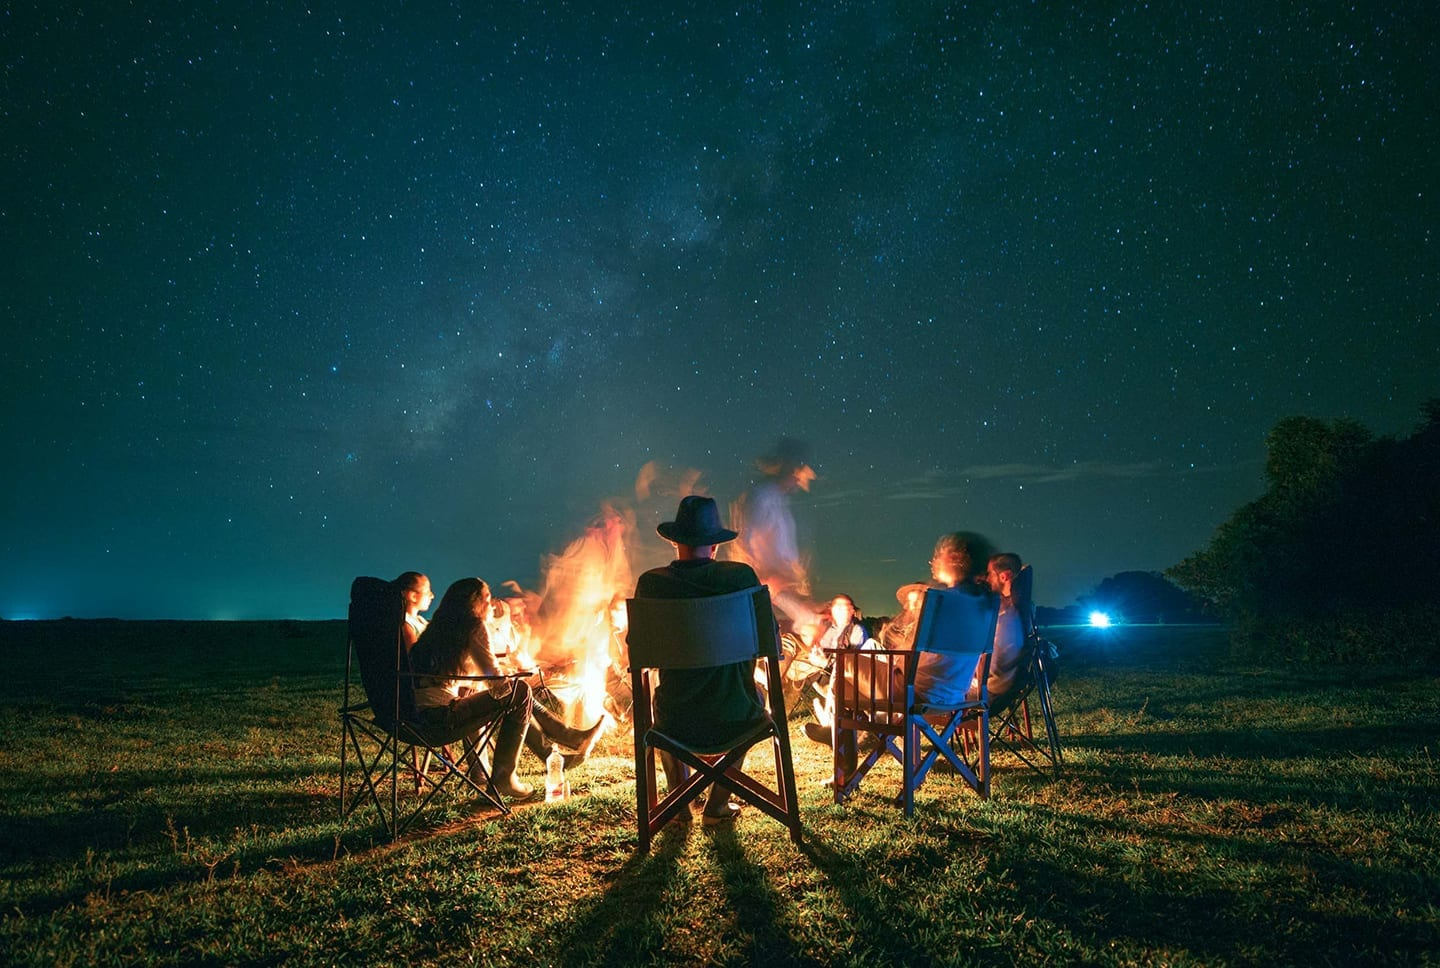 Colombia campfire under the stars